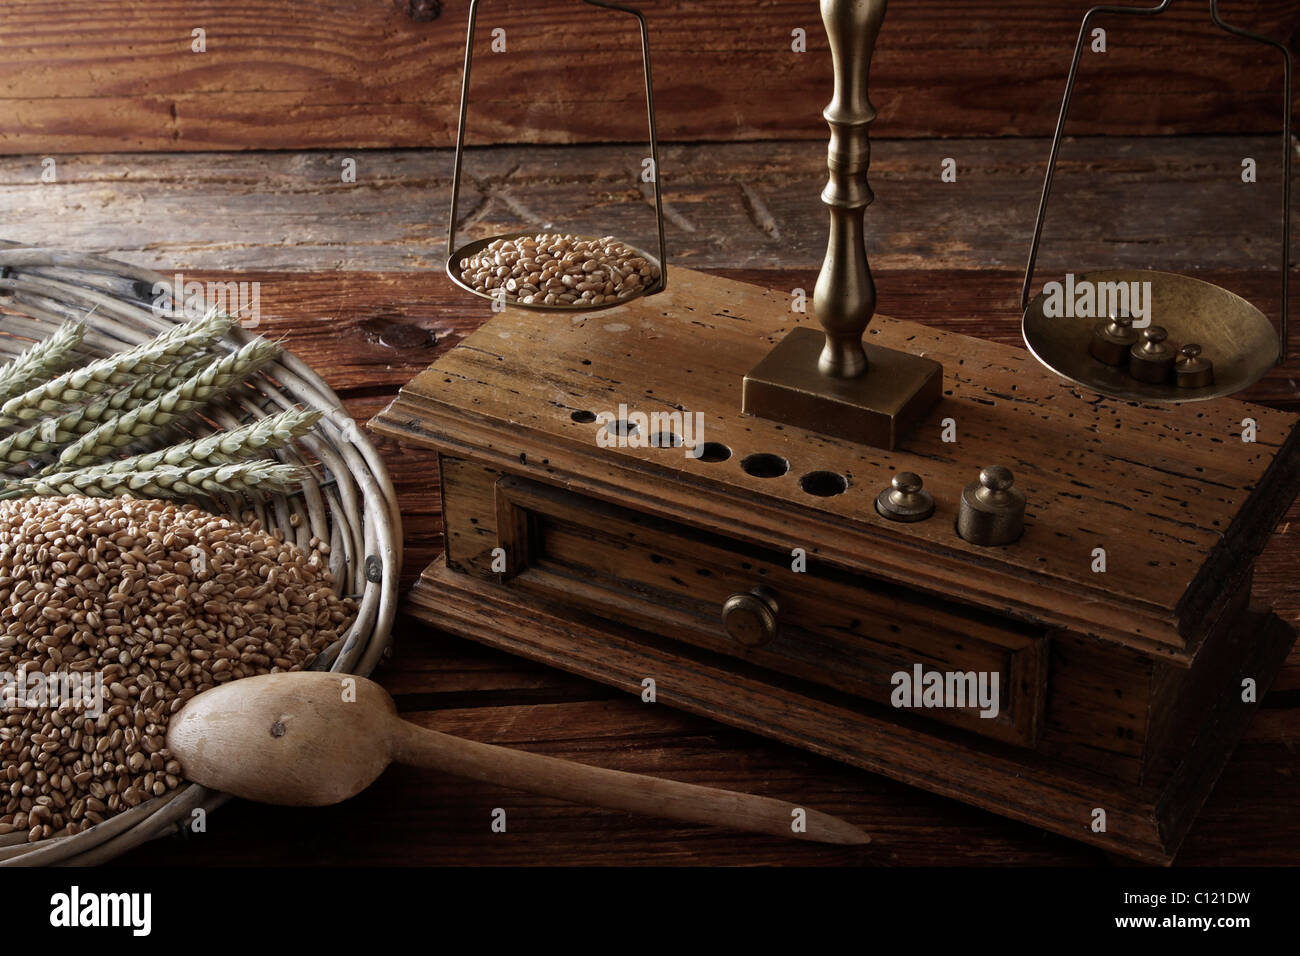 Antique scales weighing grains of Wheat (Triticum) - Stock Image